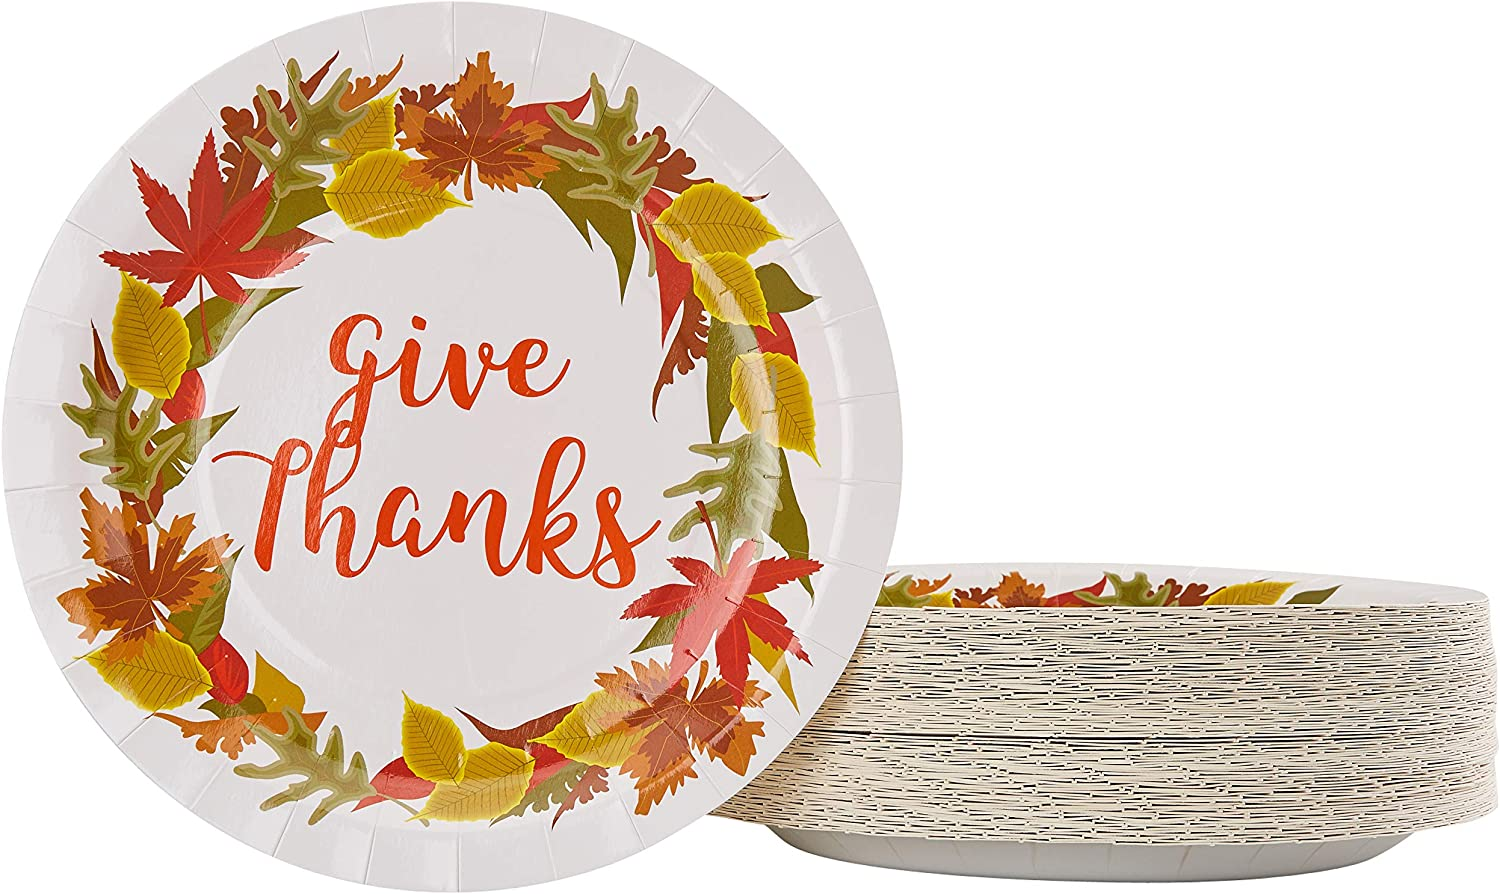 Disposable Plates - 80-Count Paper Plates, Thanksgiving Party Supplies for Appetizer, Lunch, Dinner, and Dessert, Kids Birthdays, Give Thanks Design, 9 x 9 inches